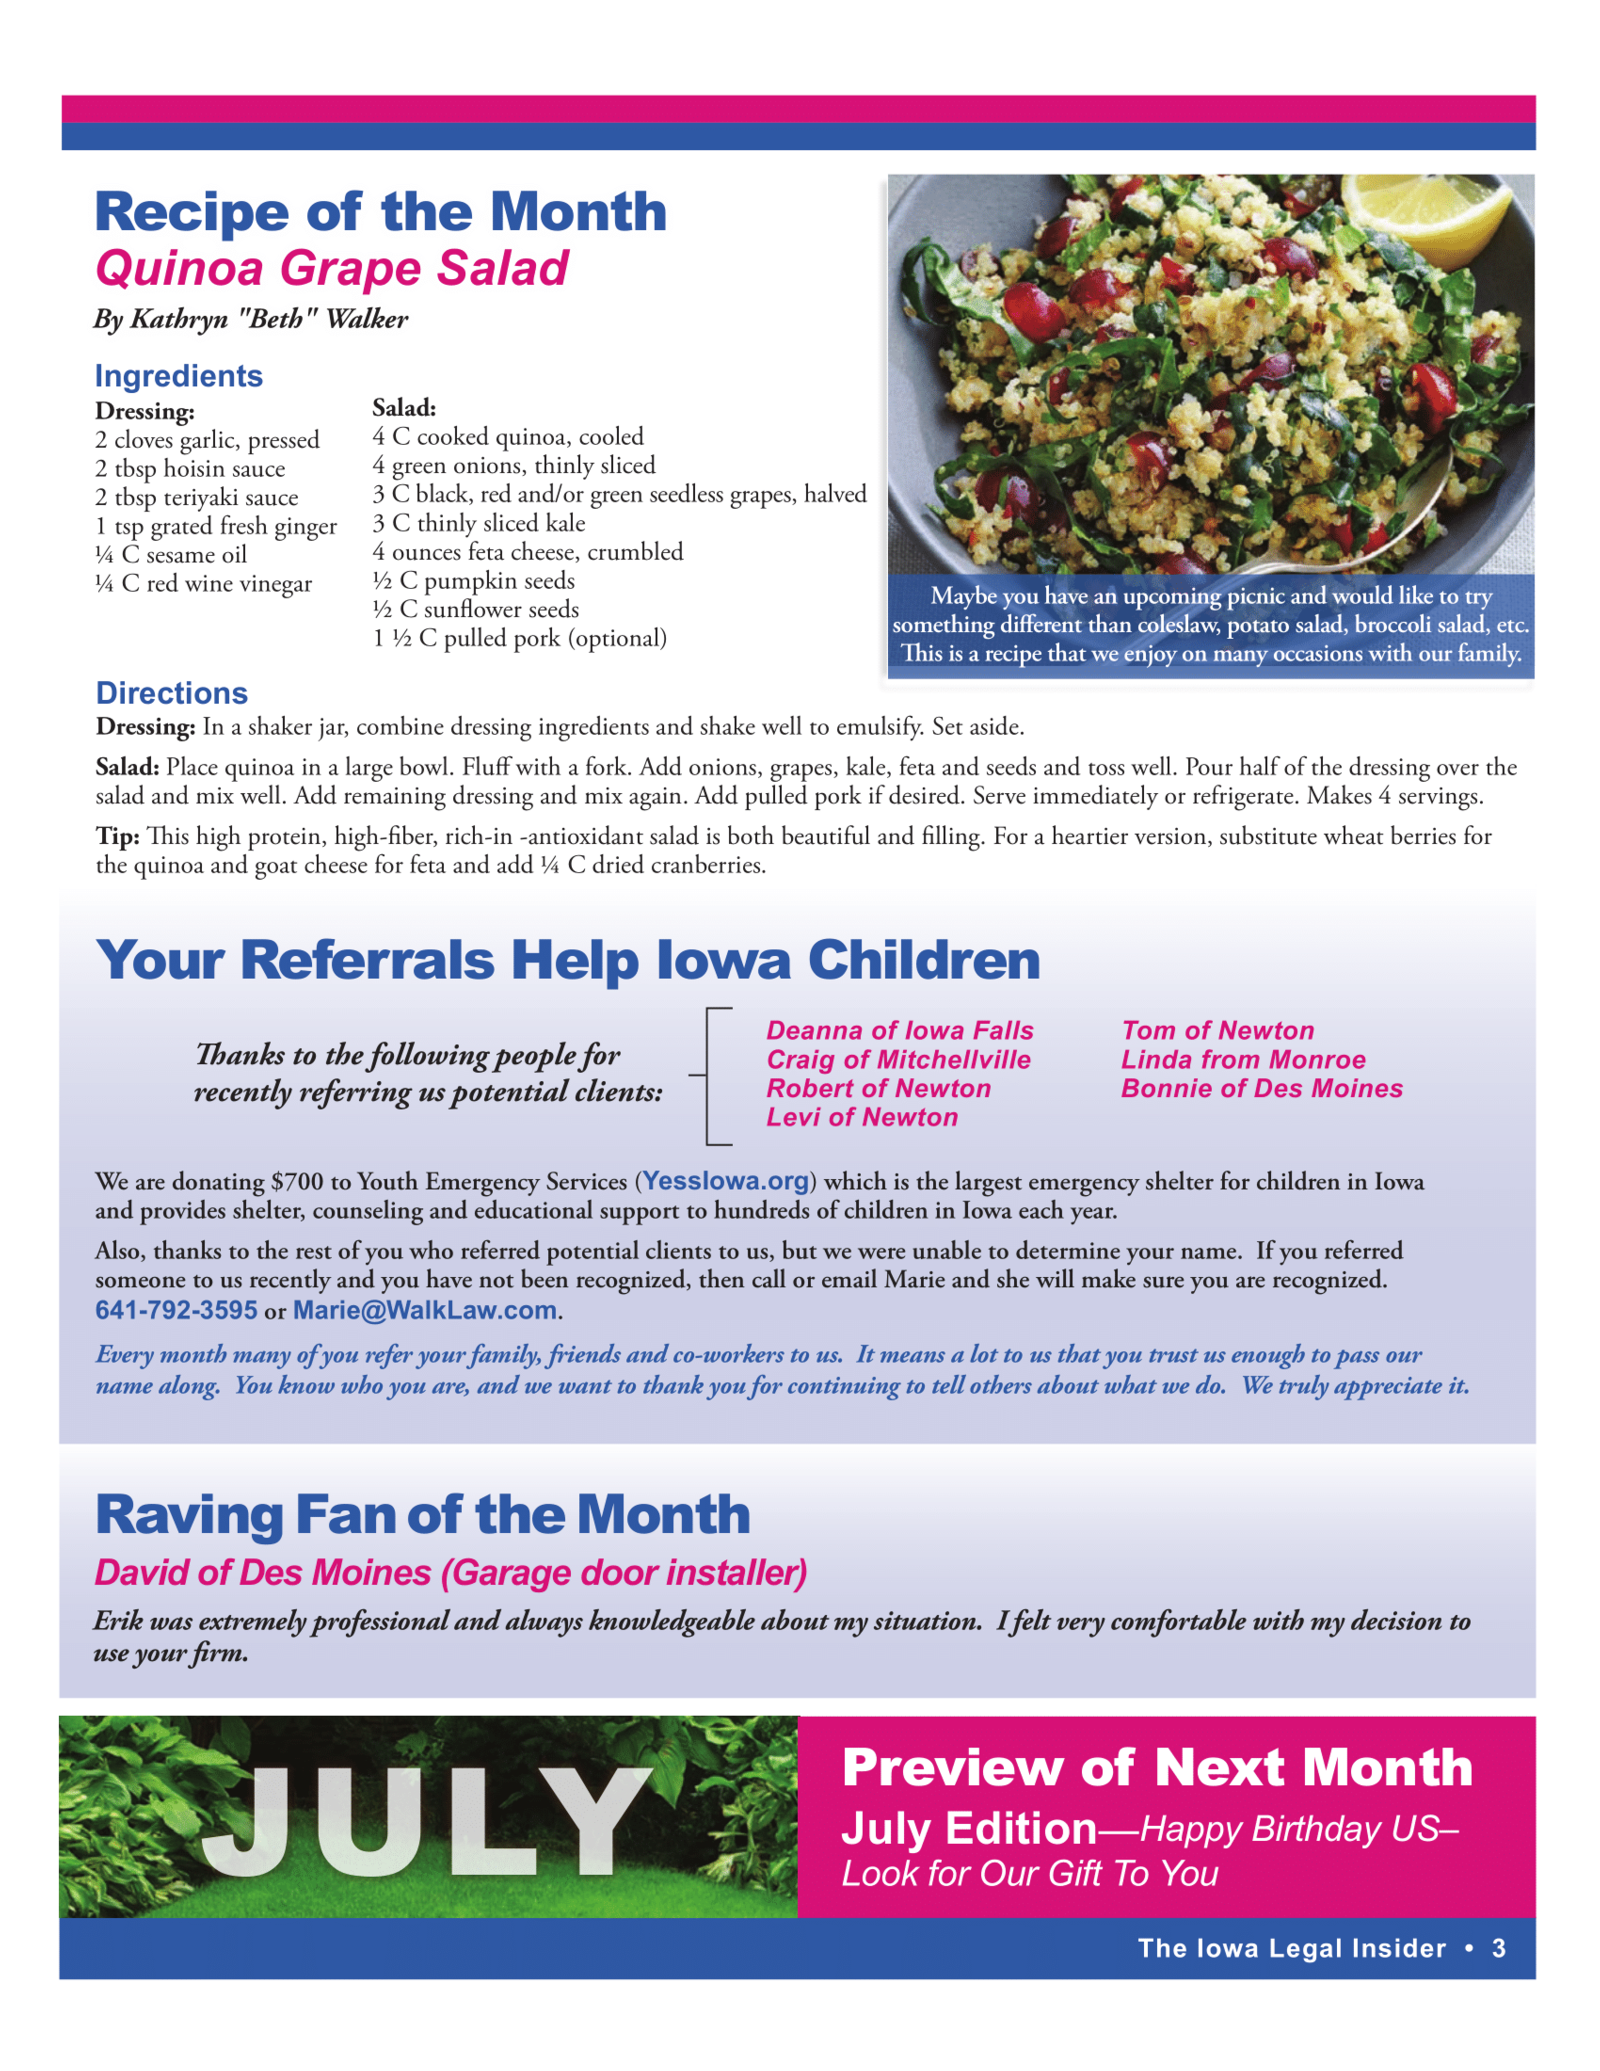 iowa legal insider newsletter recipe quinoa grape salad